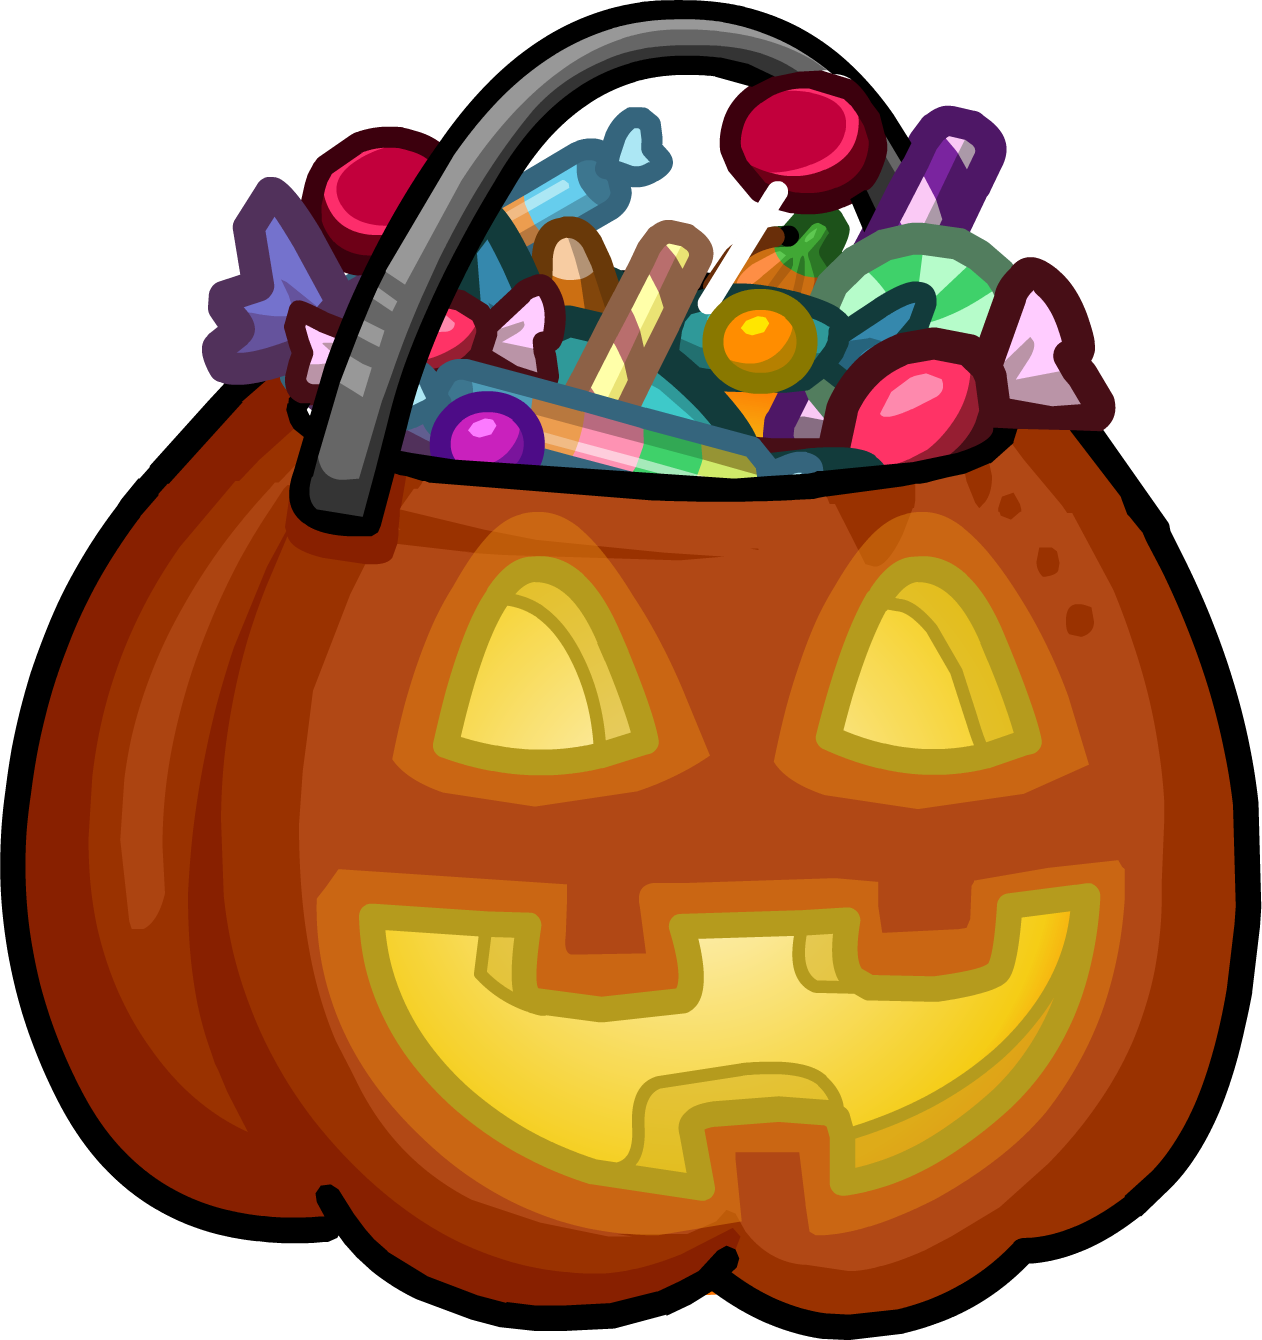 Halloween trick or treat clipart clip art free download 28+ Collection of Trick Or Treat Pumpkin Clipart | High quality ... clip art free download